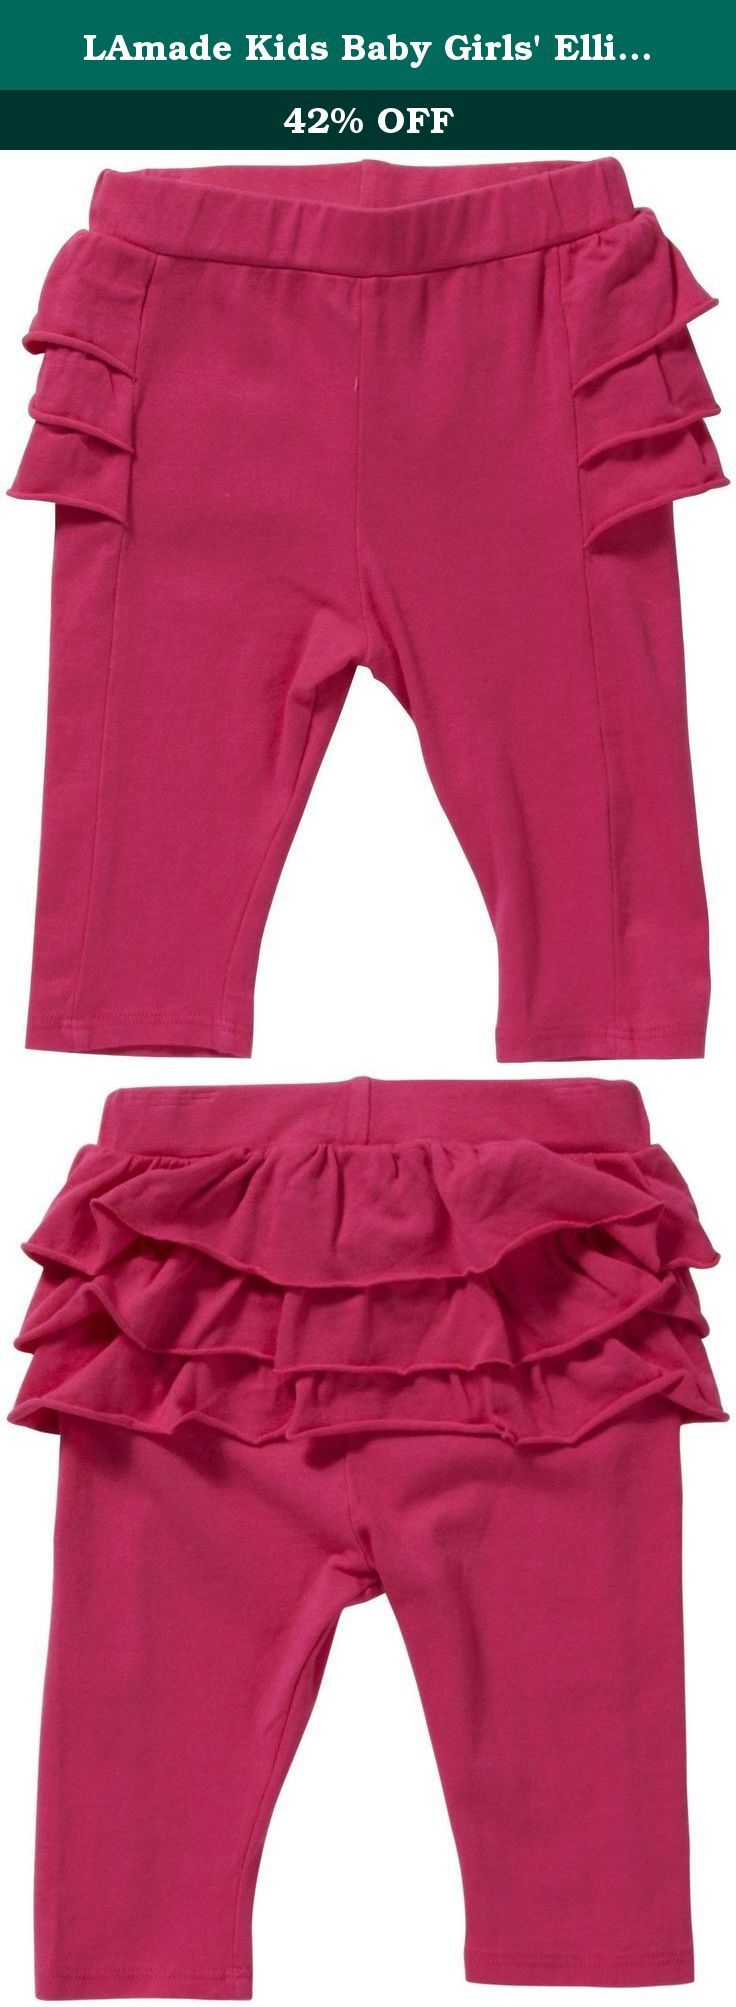 LAmade Kids Baby Girls' Ellie Skegging (Toddler/Kid) - Capri - 6-12 Months. LAmade Kids Ellie Skegging (Toddler/Kid) - Capri Update her basics with sweet and soft leggings that will keep her cozy. The LAmade Ellie Skegging features a back with cute ruffle layers. Features: long length Ruffle back.